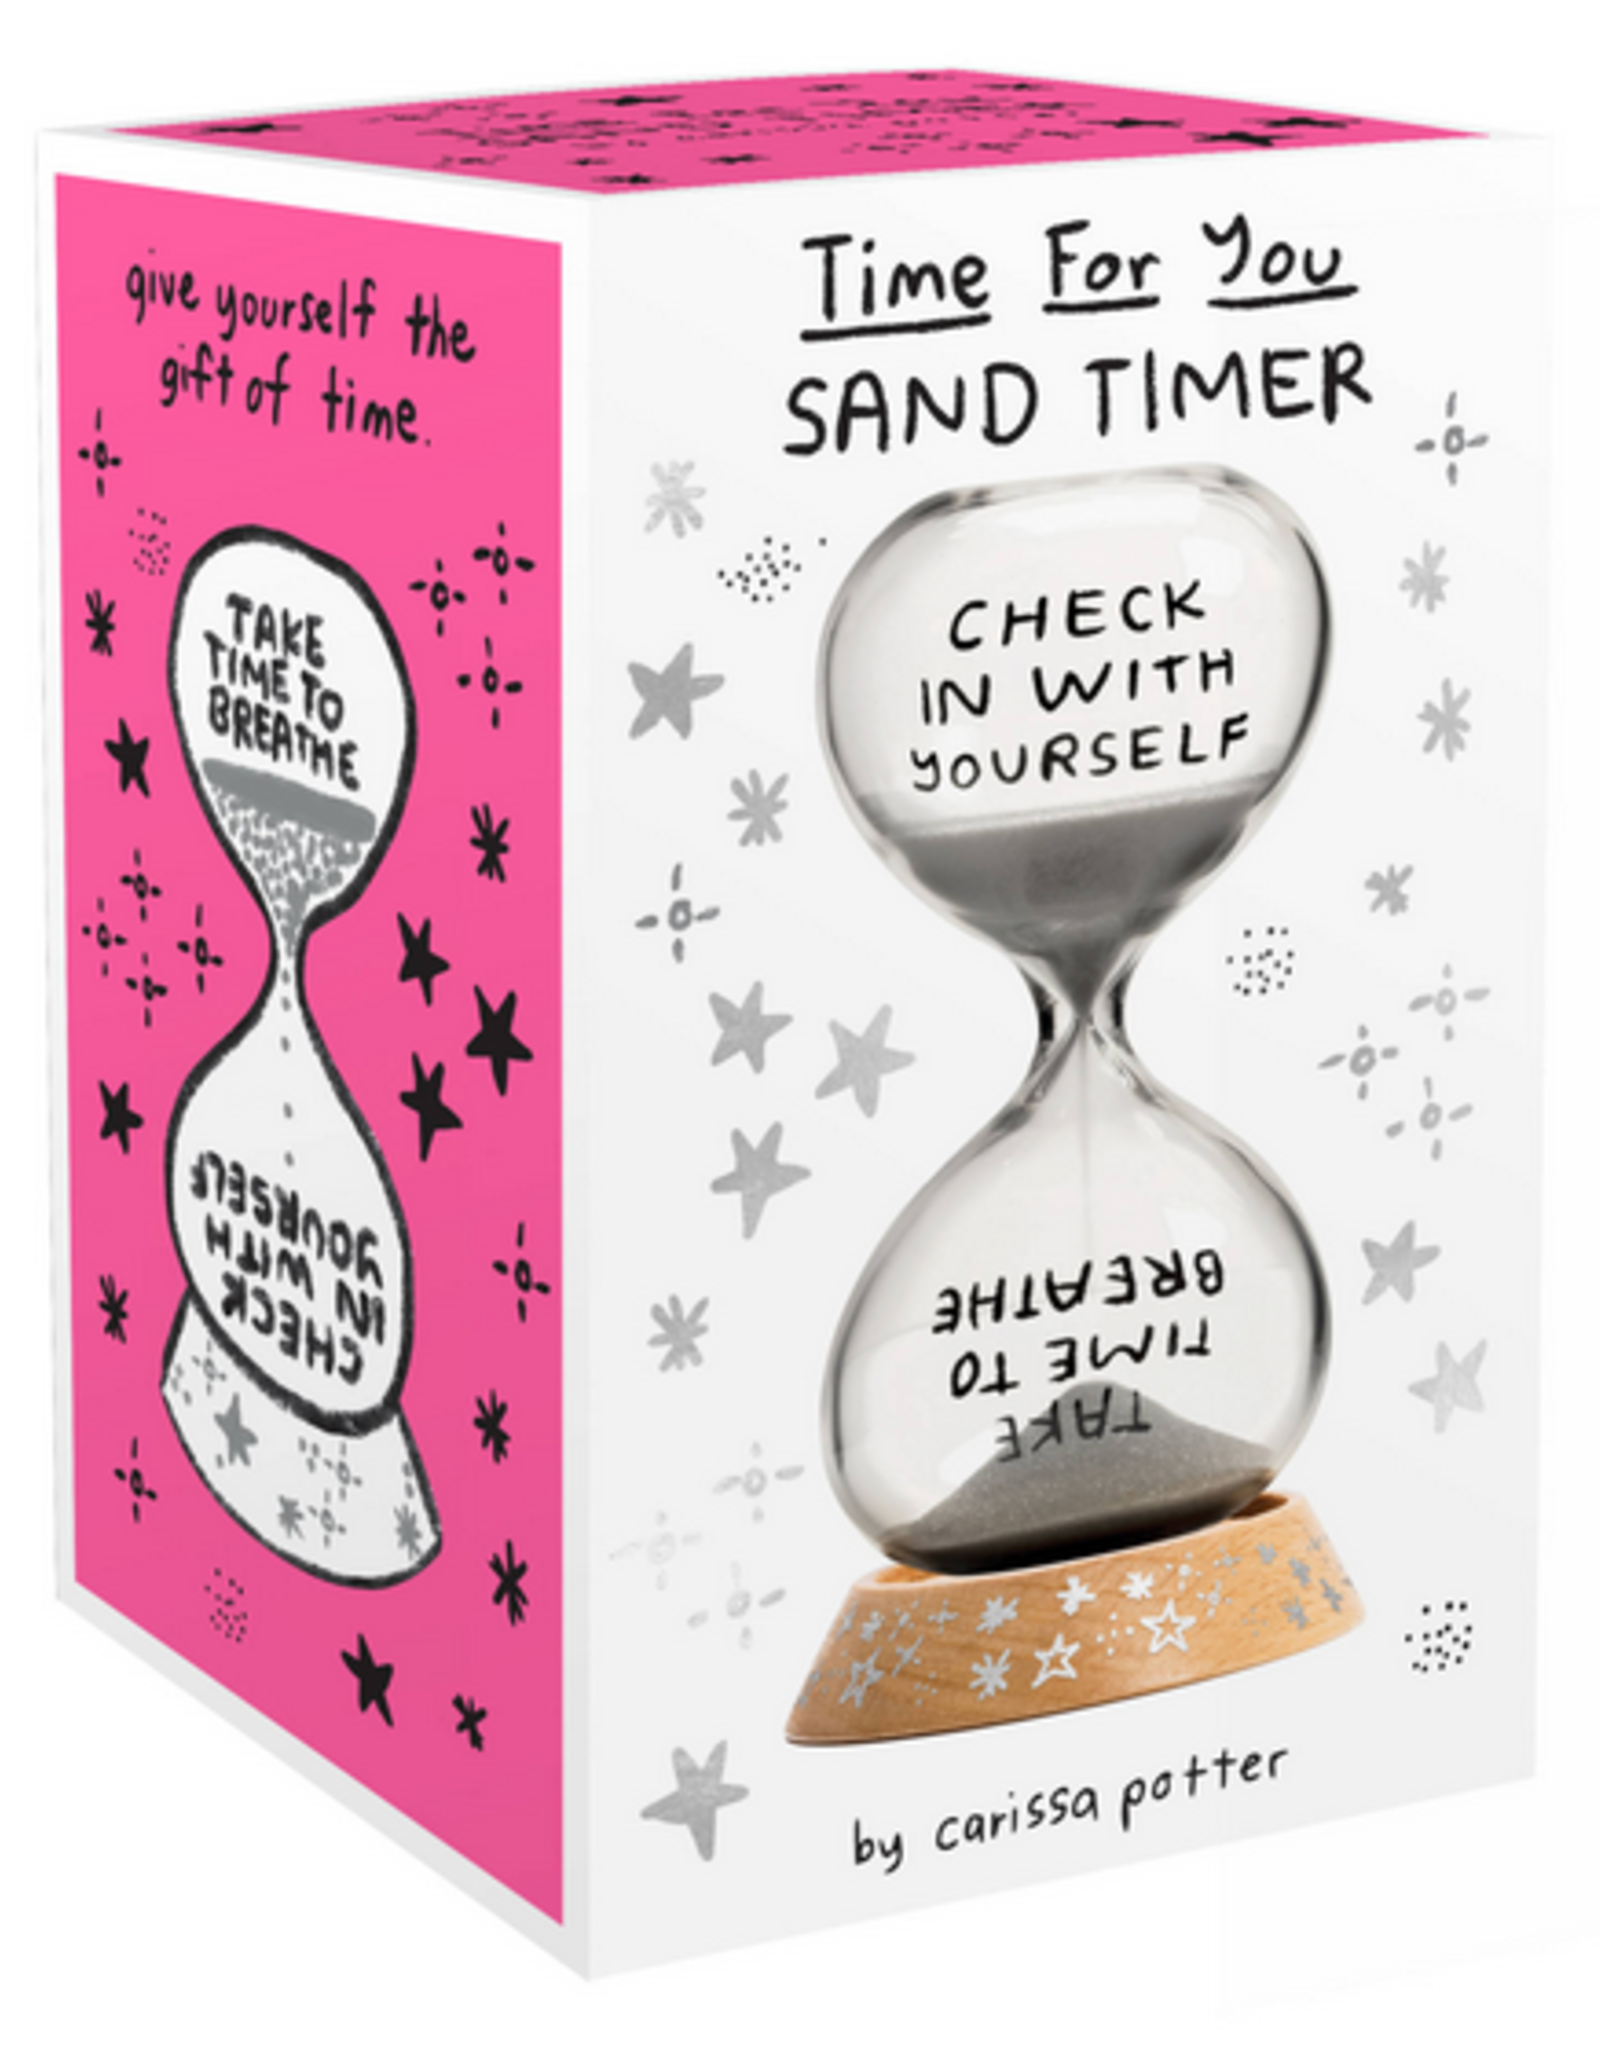 Time for you sand timer